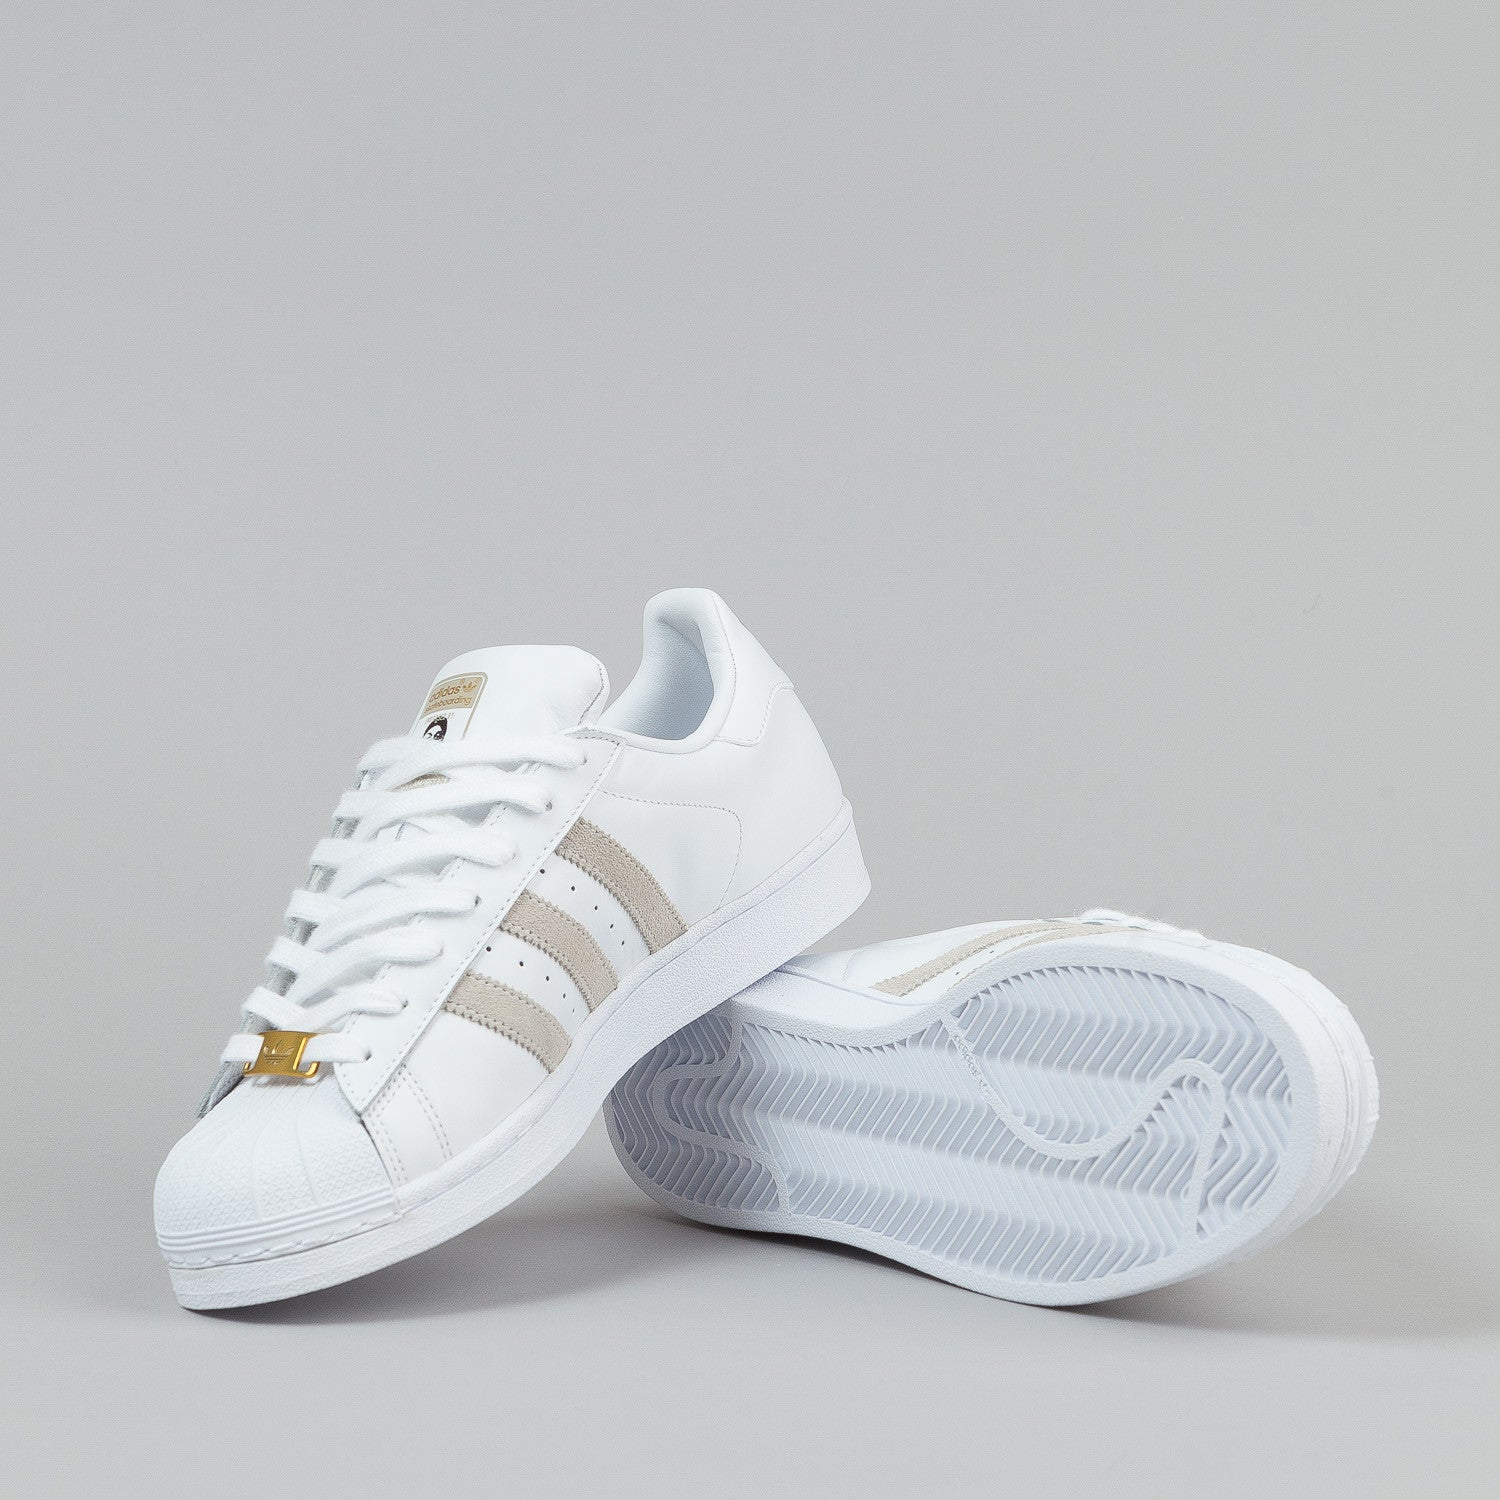 NEW ADIDAS WOMENS ORIGINALS SUPERSTAR UP WEDGE